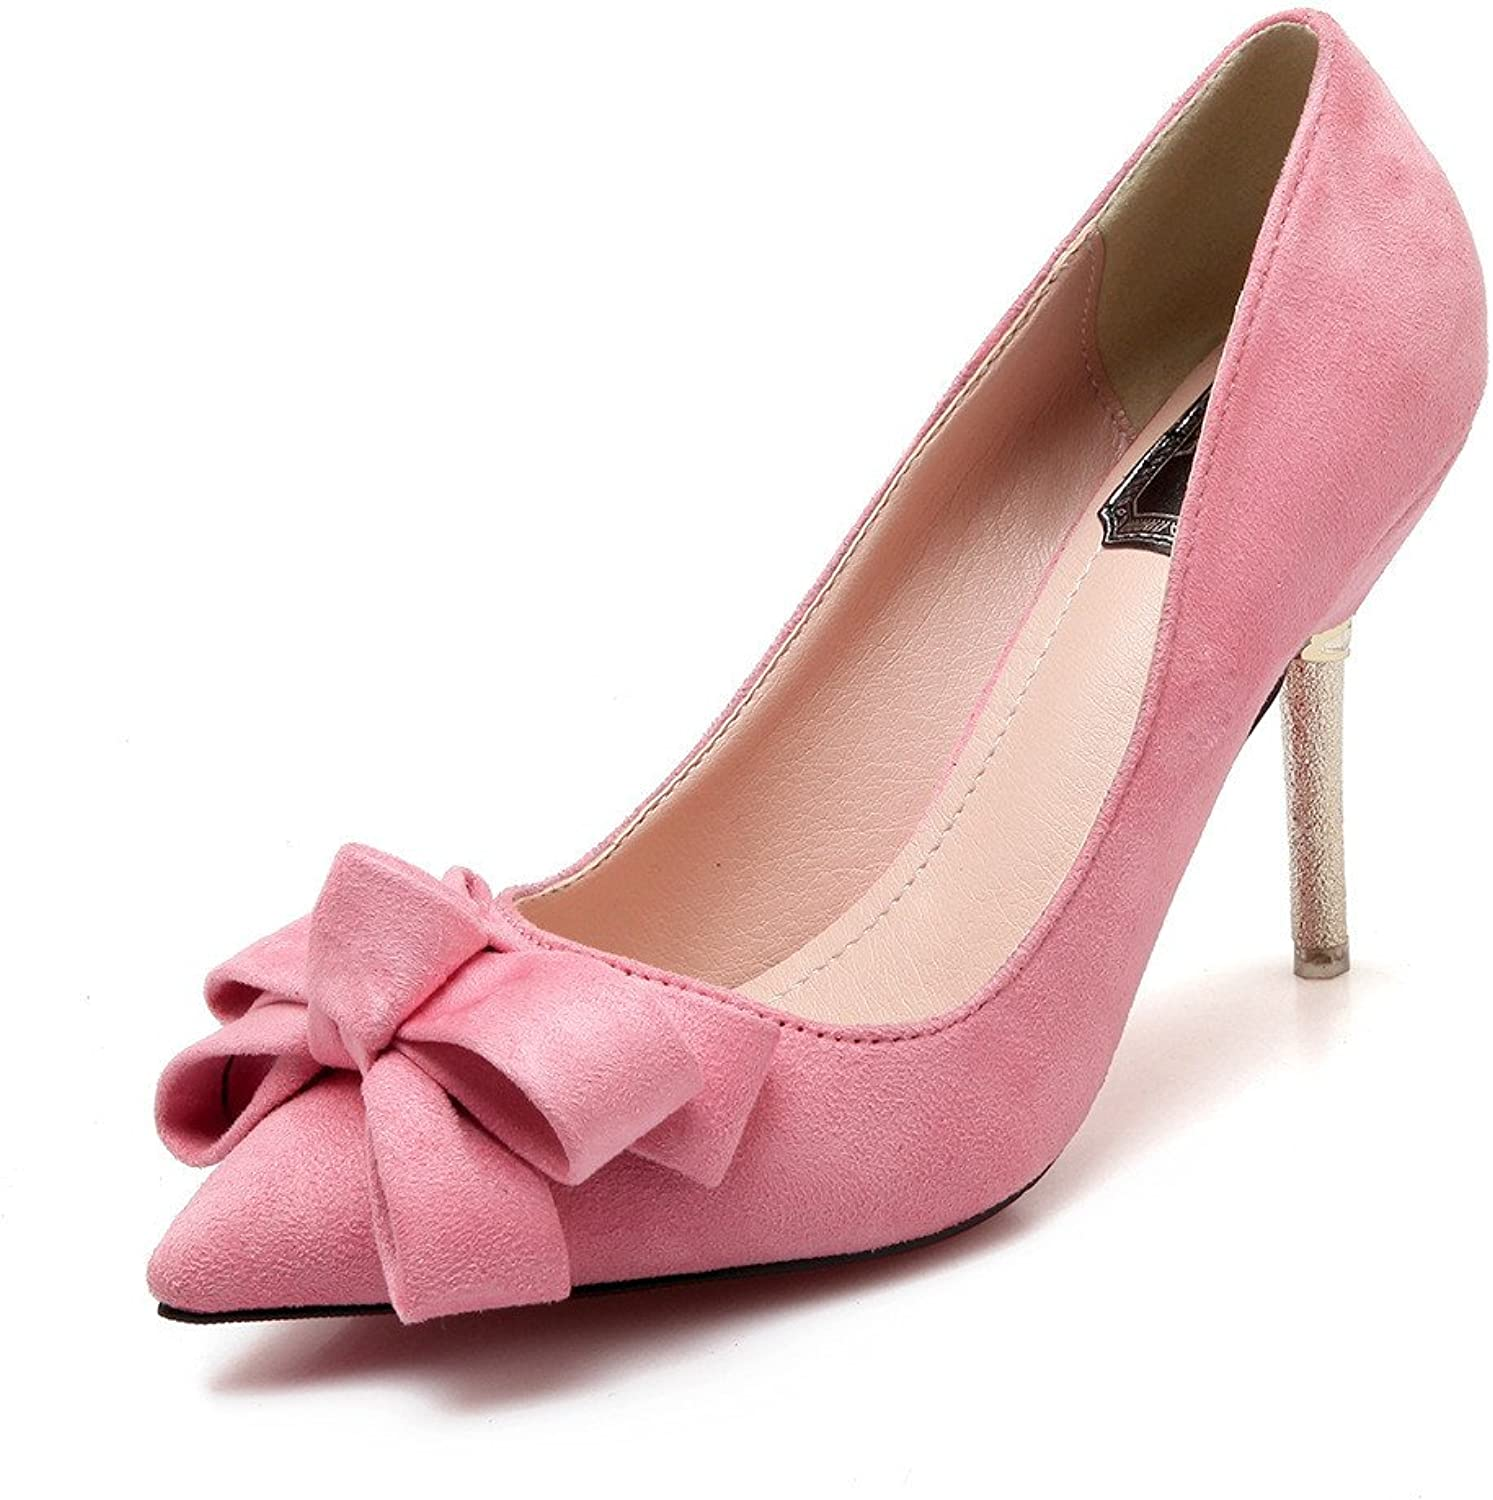 shoesmaker's heart Sexy High-Heeled shoes Suede shoes Women's shoes Spring and Autumn shoes New shoes Low Fashion High Heels Fine Heel Pointed Point